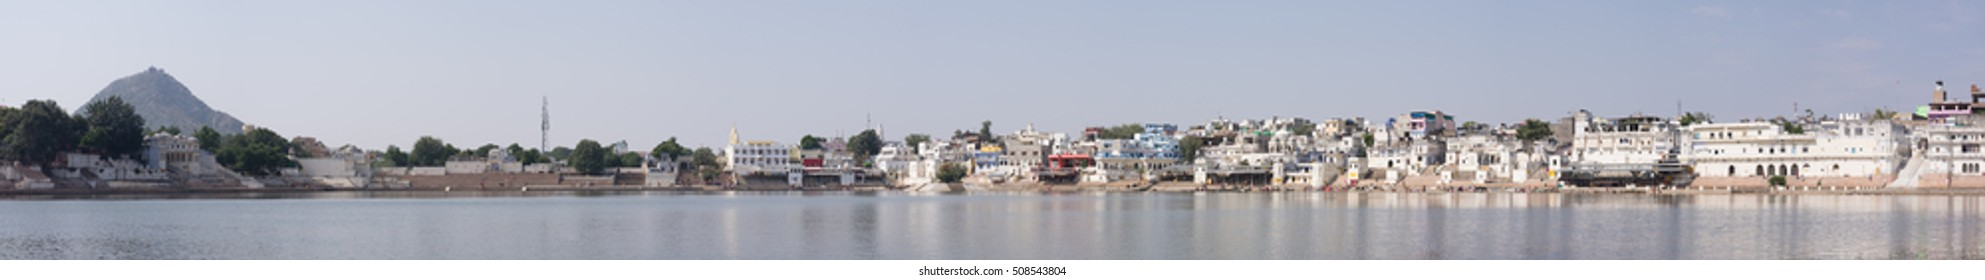 Pushkar lake panoramic view, Rajasthan, India.